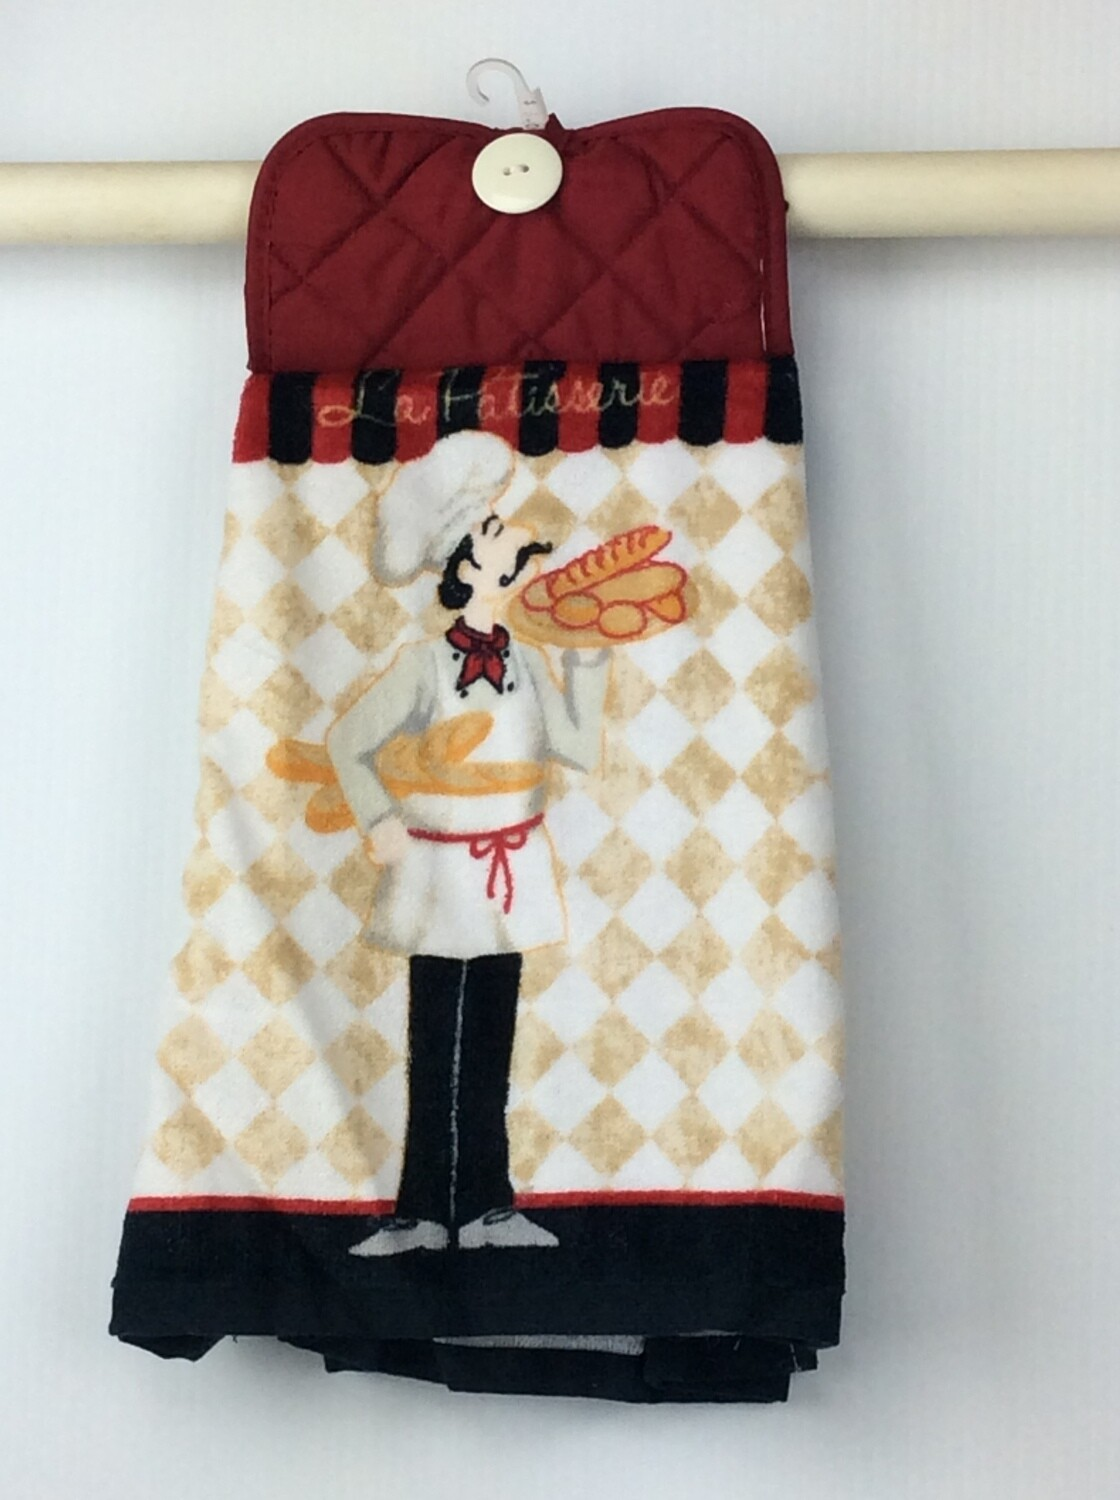 Bakery chef Pot holder Top Towel